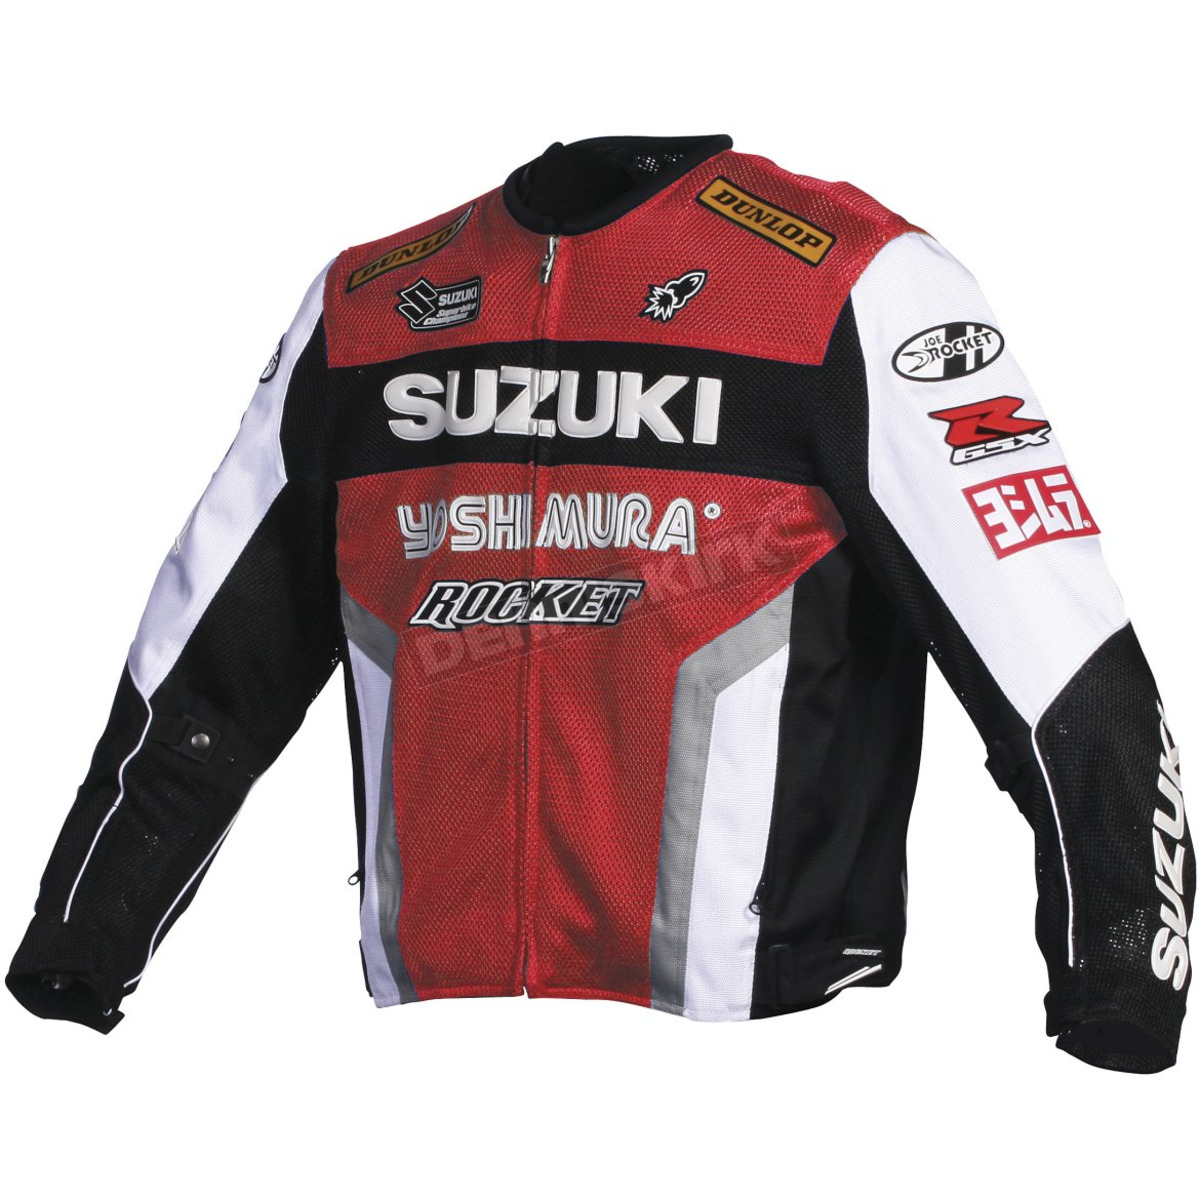 Joe Rocket Suzuki Jacket